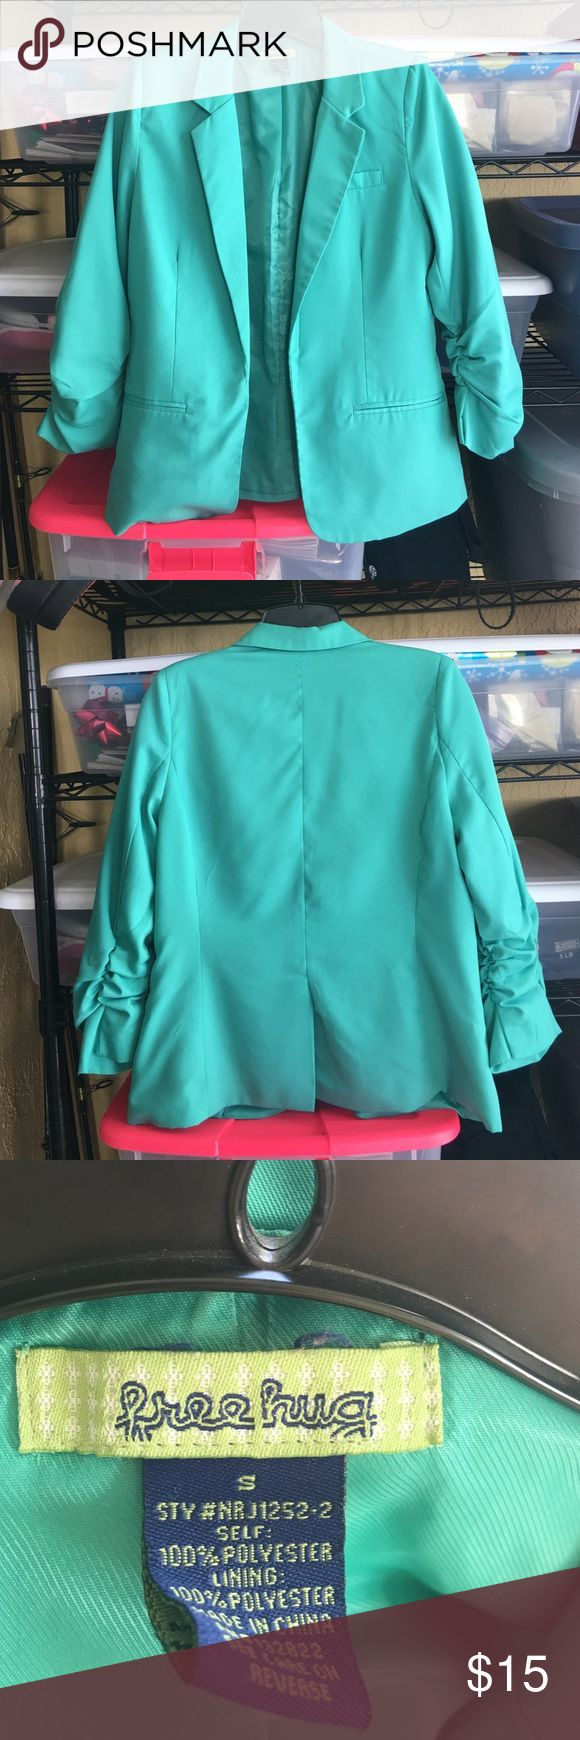 Mint Green 3/5 Sleeve Blazer Fits true to size and has only been dry cleaned and worn a few times. Jackets & Coats Blazers